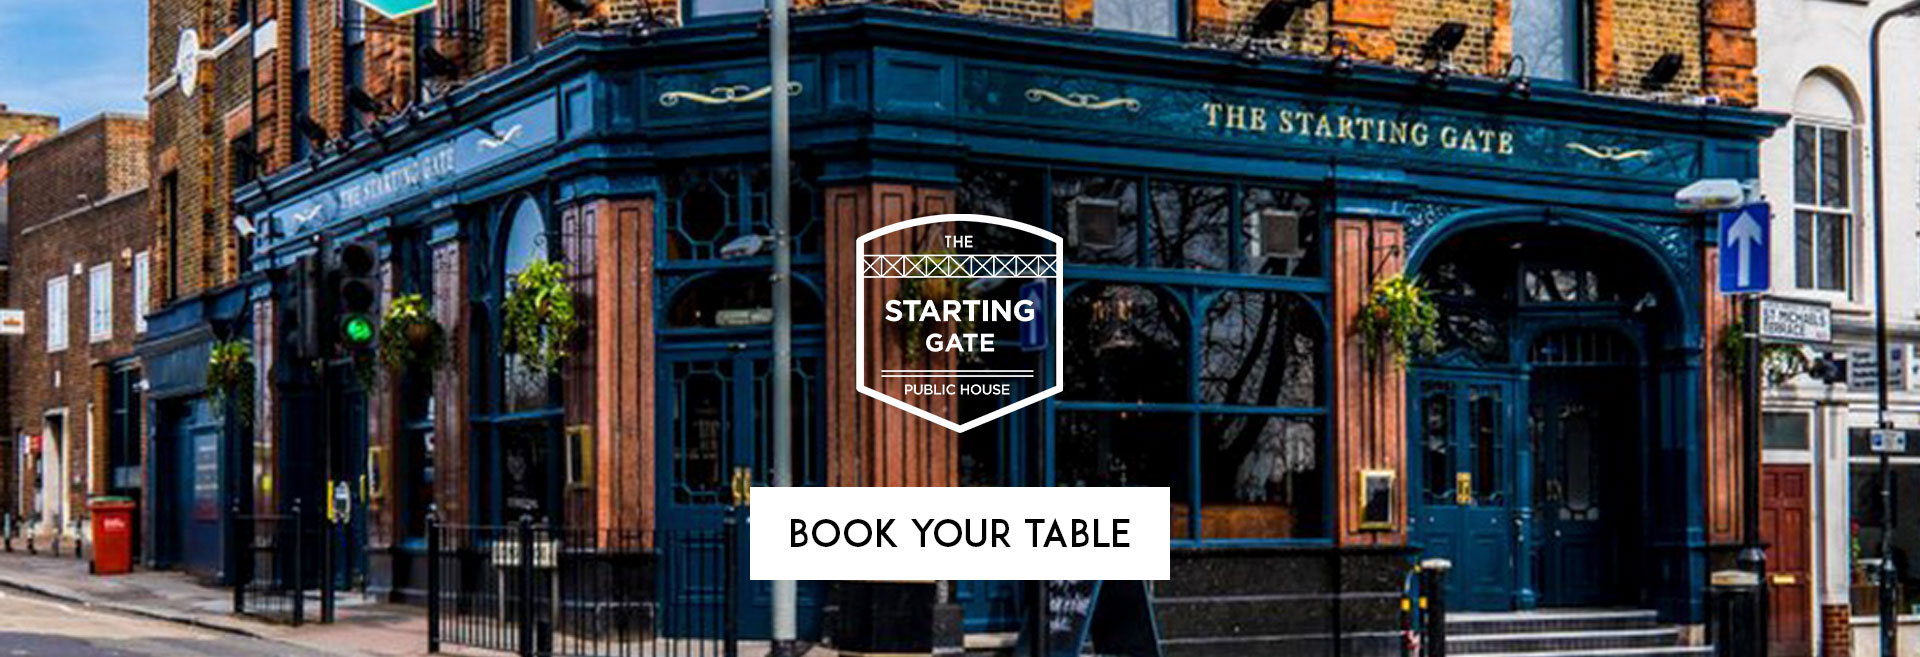 Book Your Table at The Starting Gate